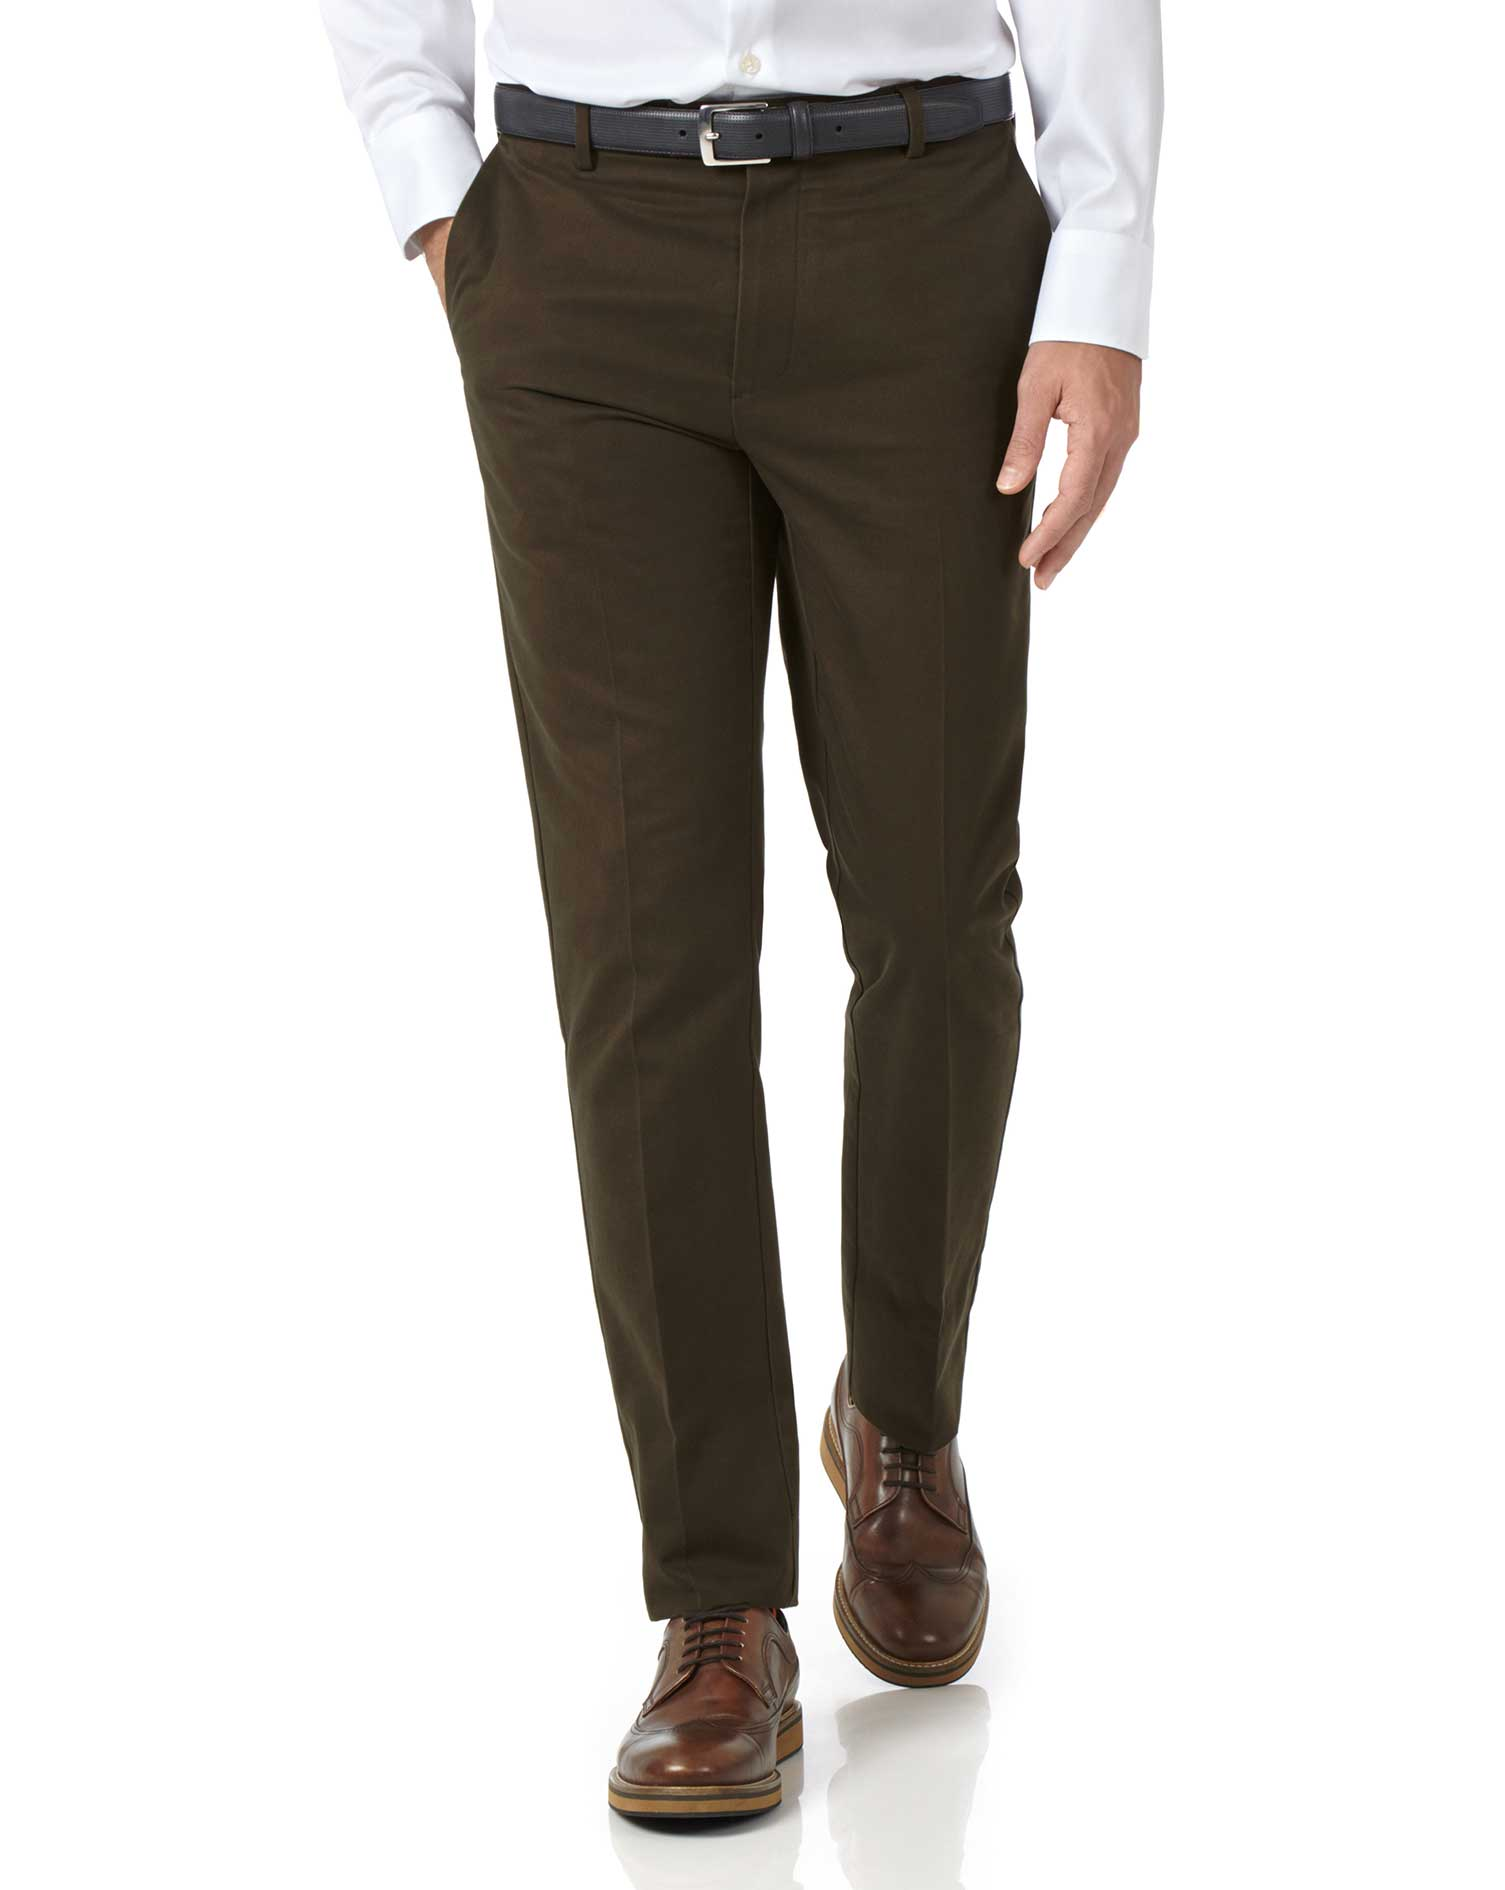 Brown Extra Slim Fit Flat Front Non-Iron Cotton Chino Trousers Size W32 L30 by Charles Tyrwhitt